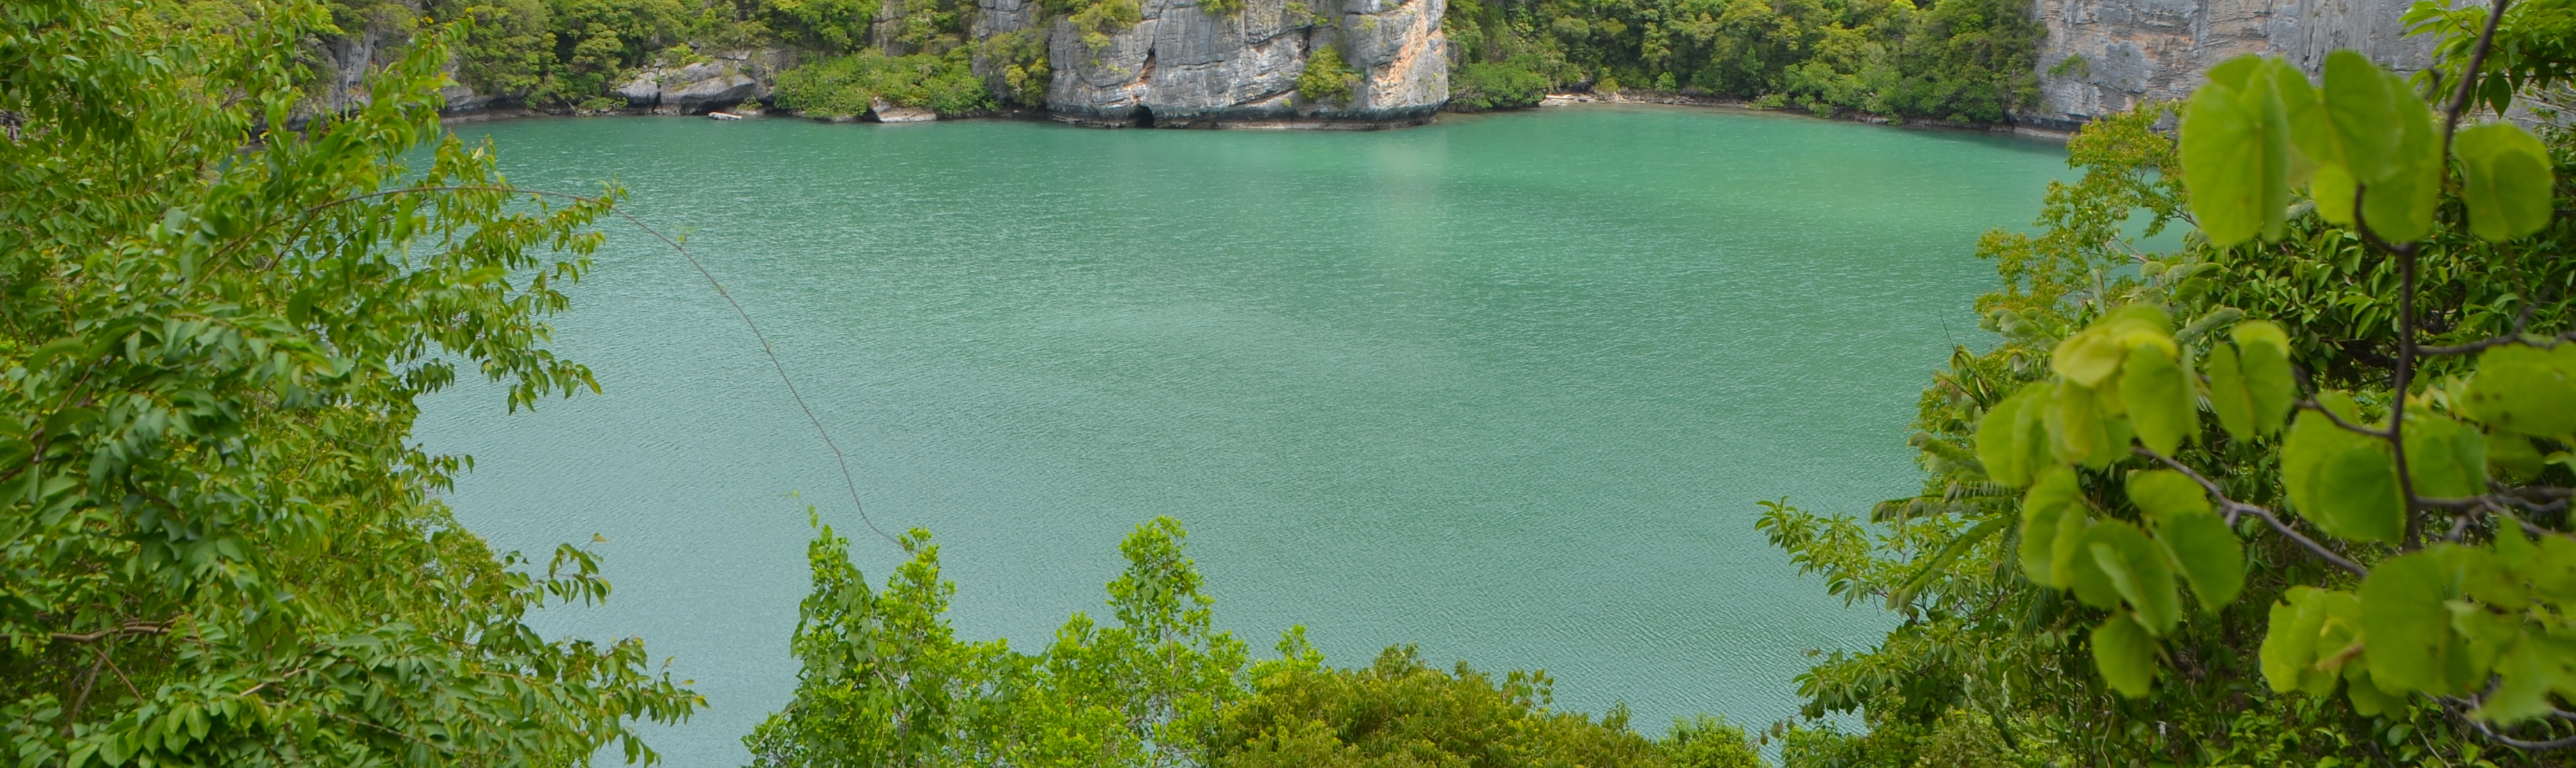 Tailandia_Angton National Park_Green Lagoon